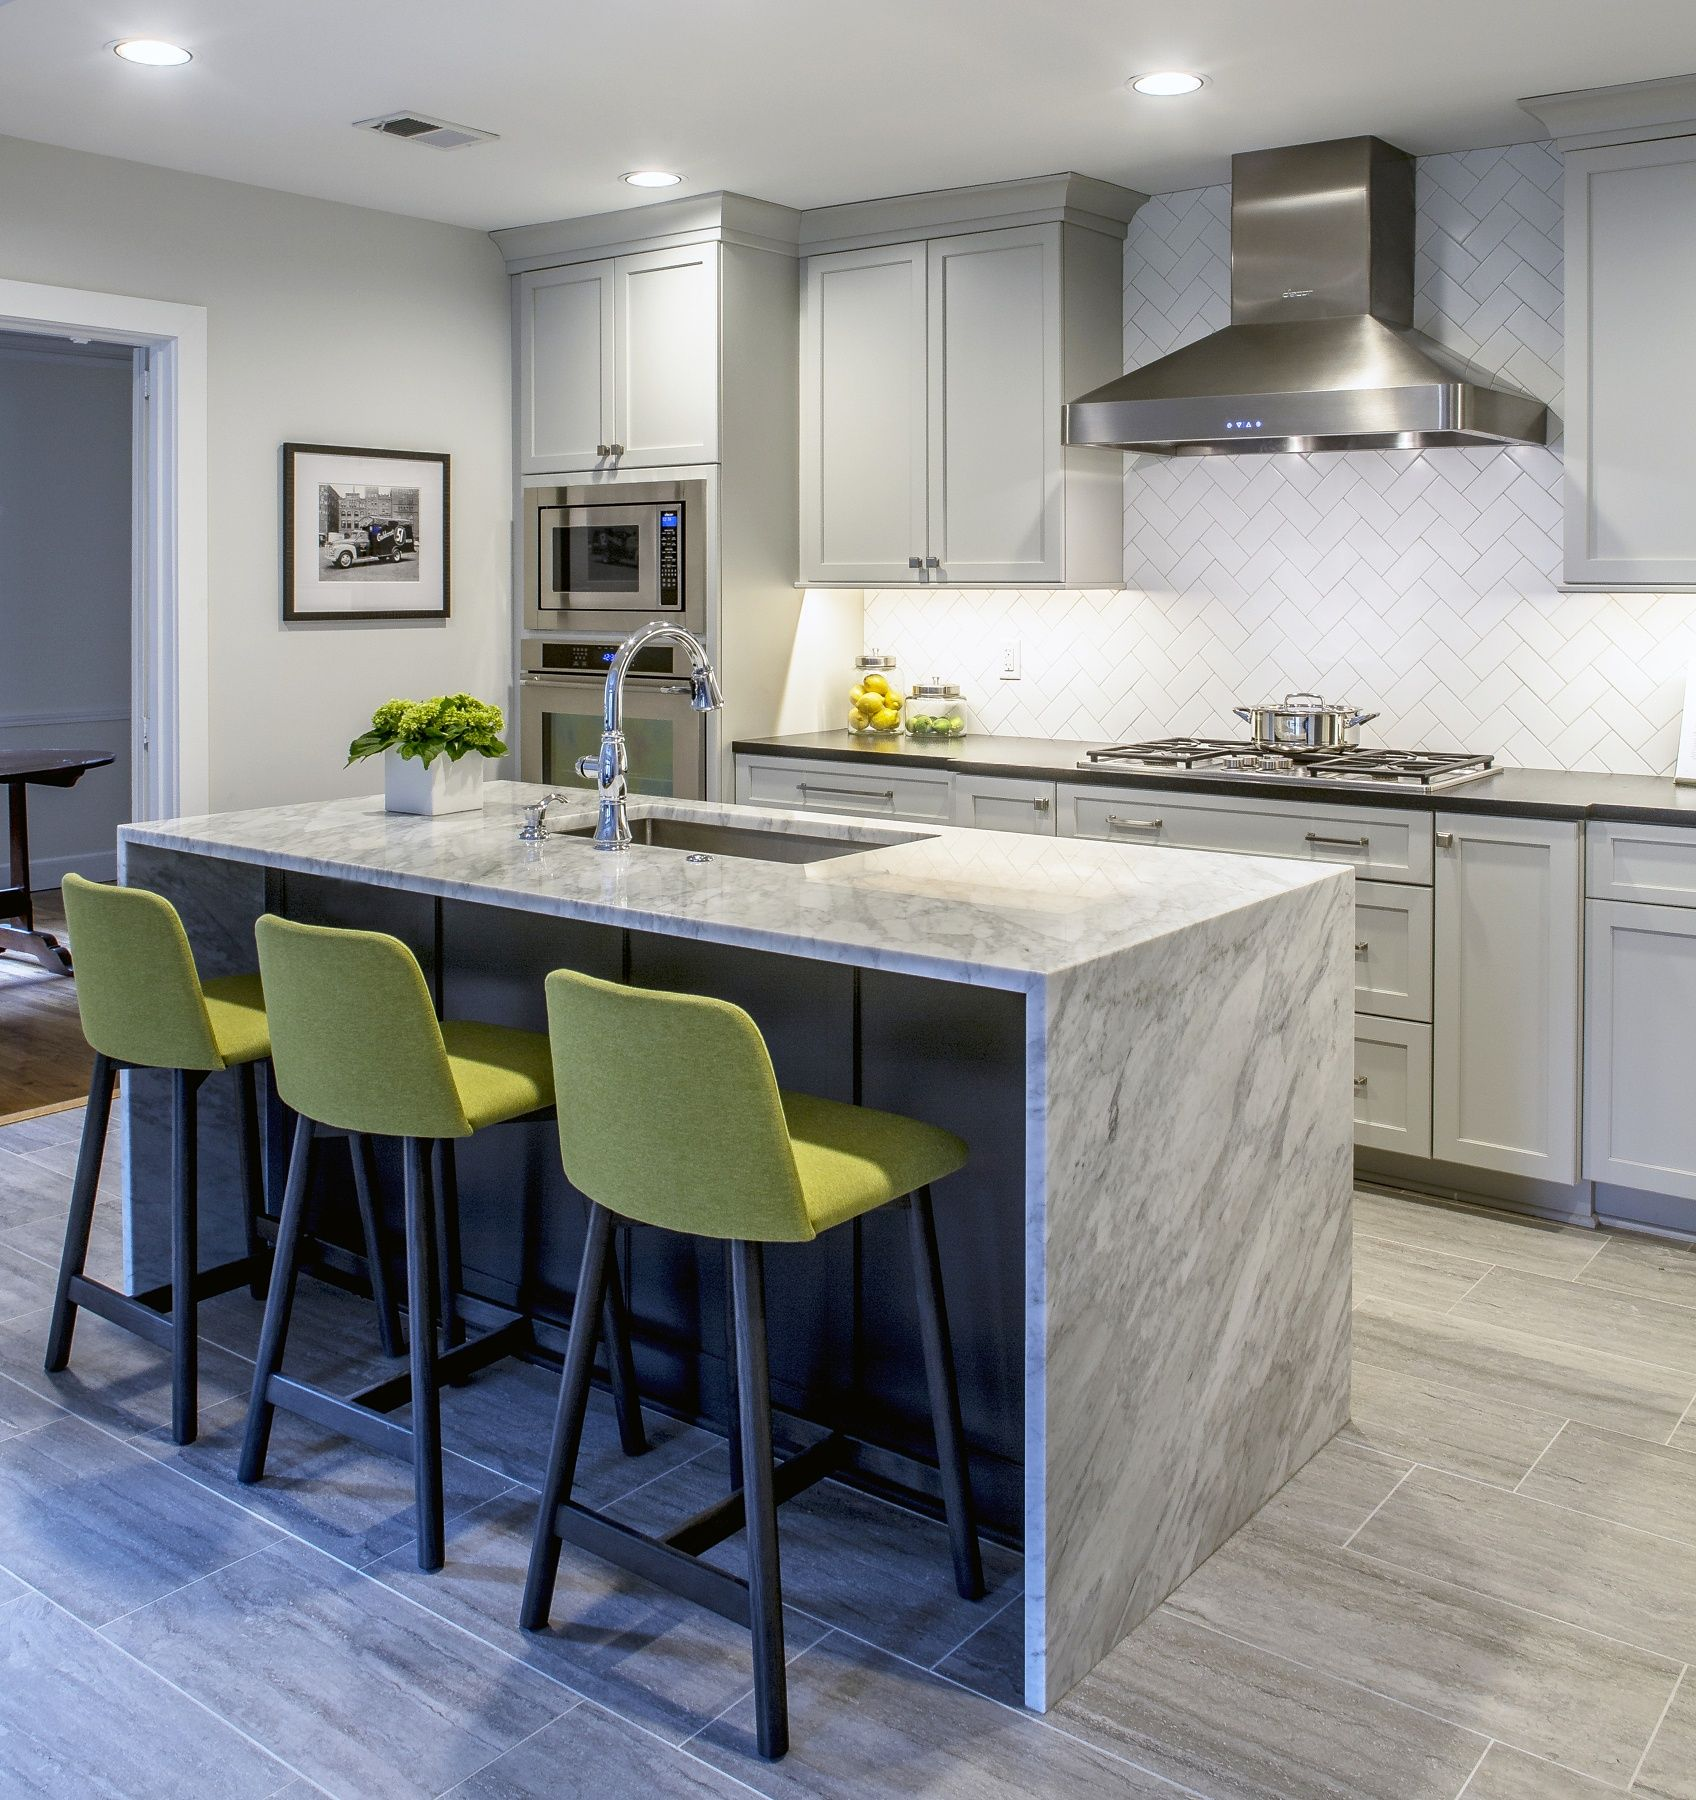 8 Tips And Tricks For Designing A Smart And Stylish Kitchen. Black Granite  CountertopsStylish ...